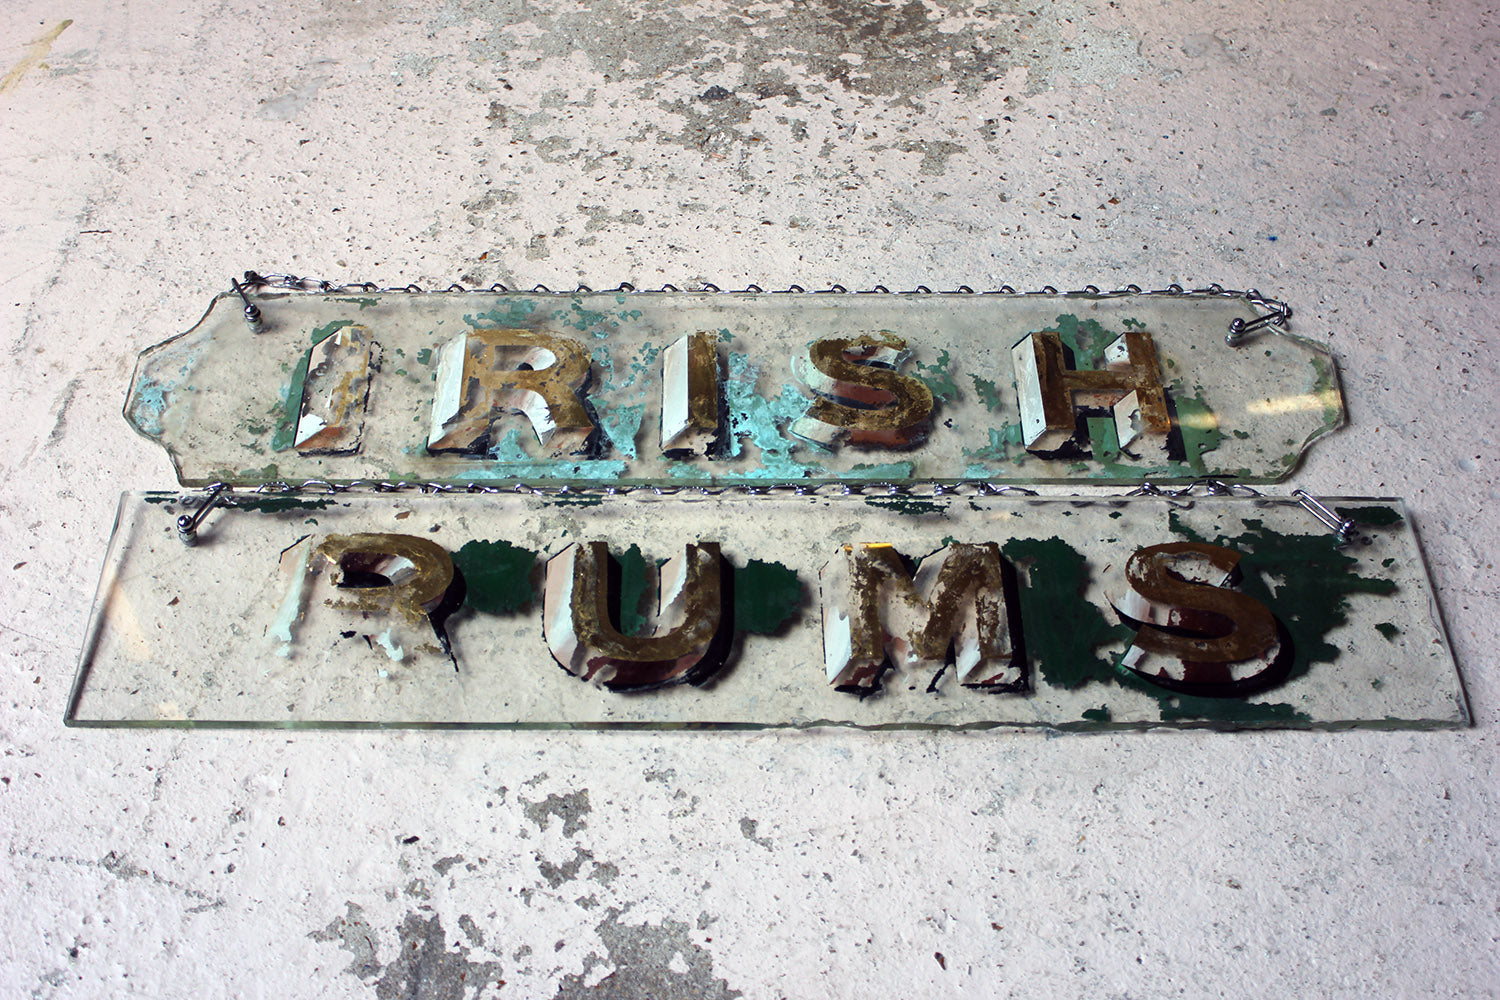 A Pair of c.1900 Reverse Glass Painted Publican Advertising Signs for Irish Rums